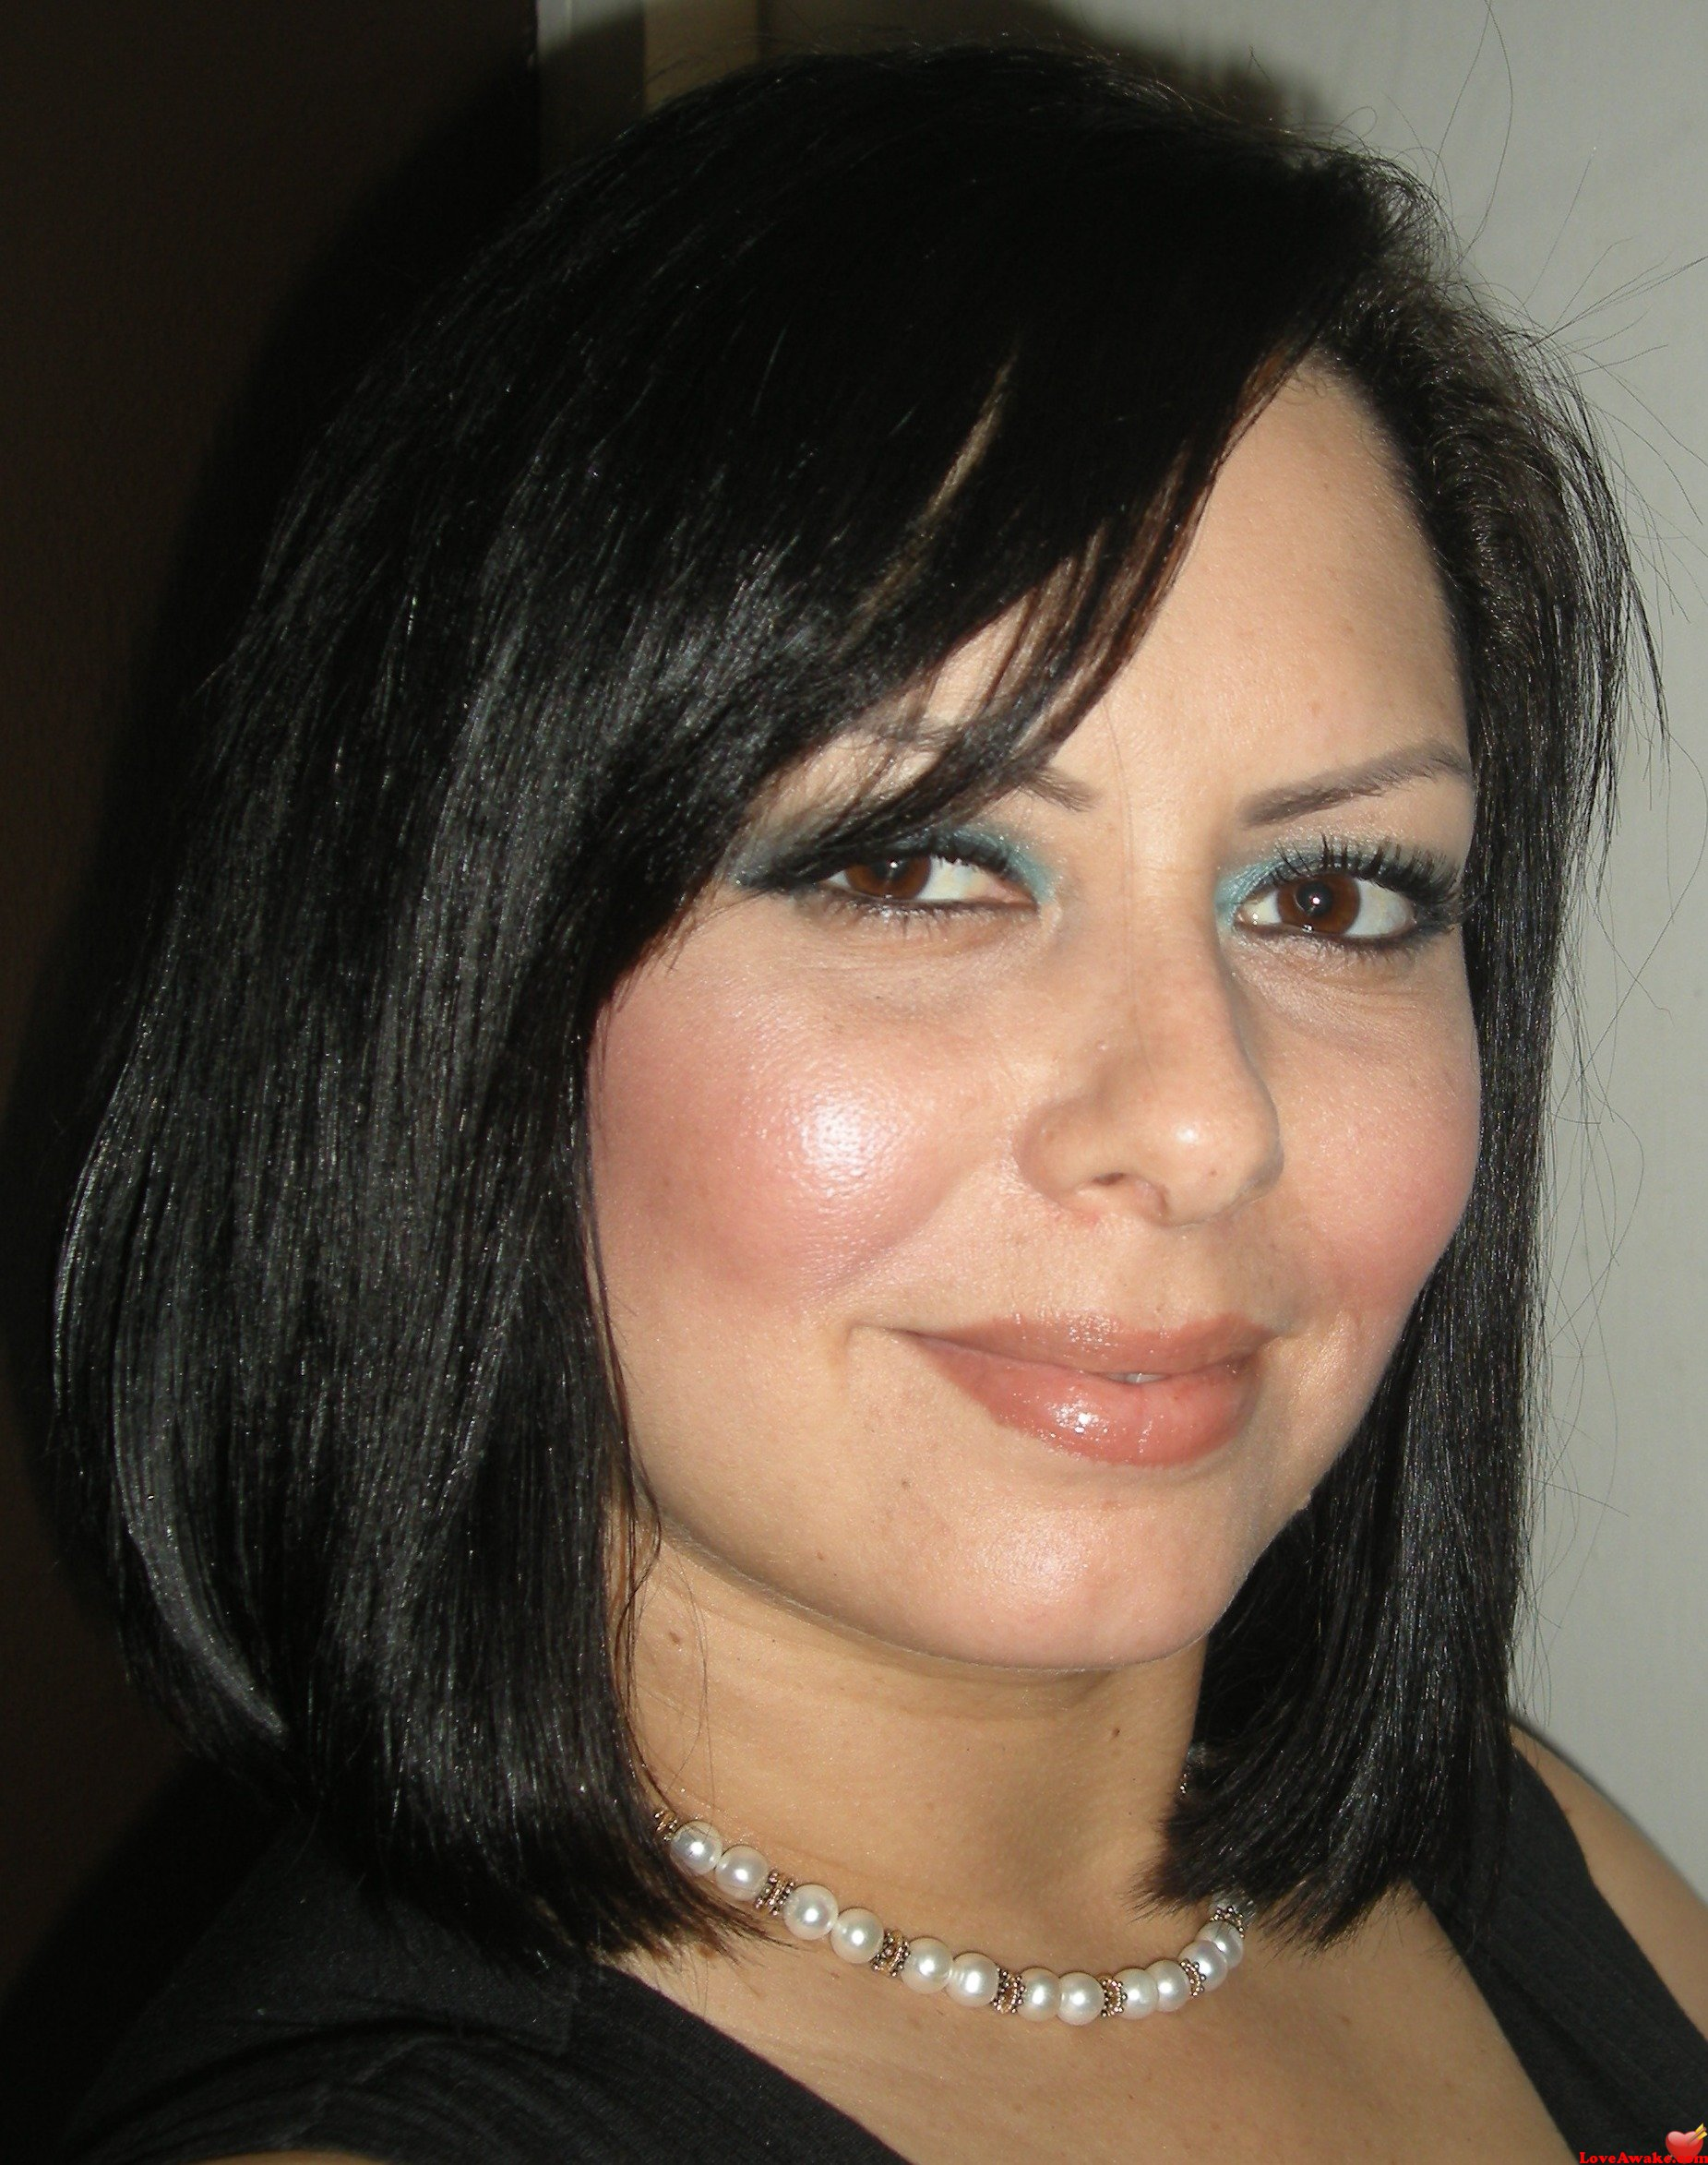 45 year old woman dating isabela puerto rico